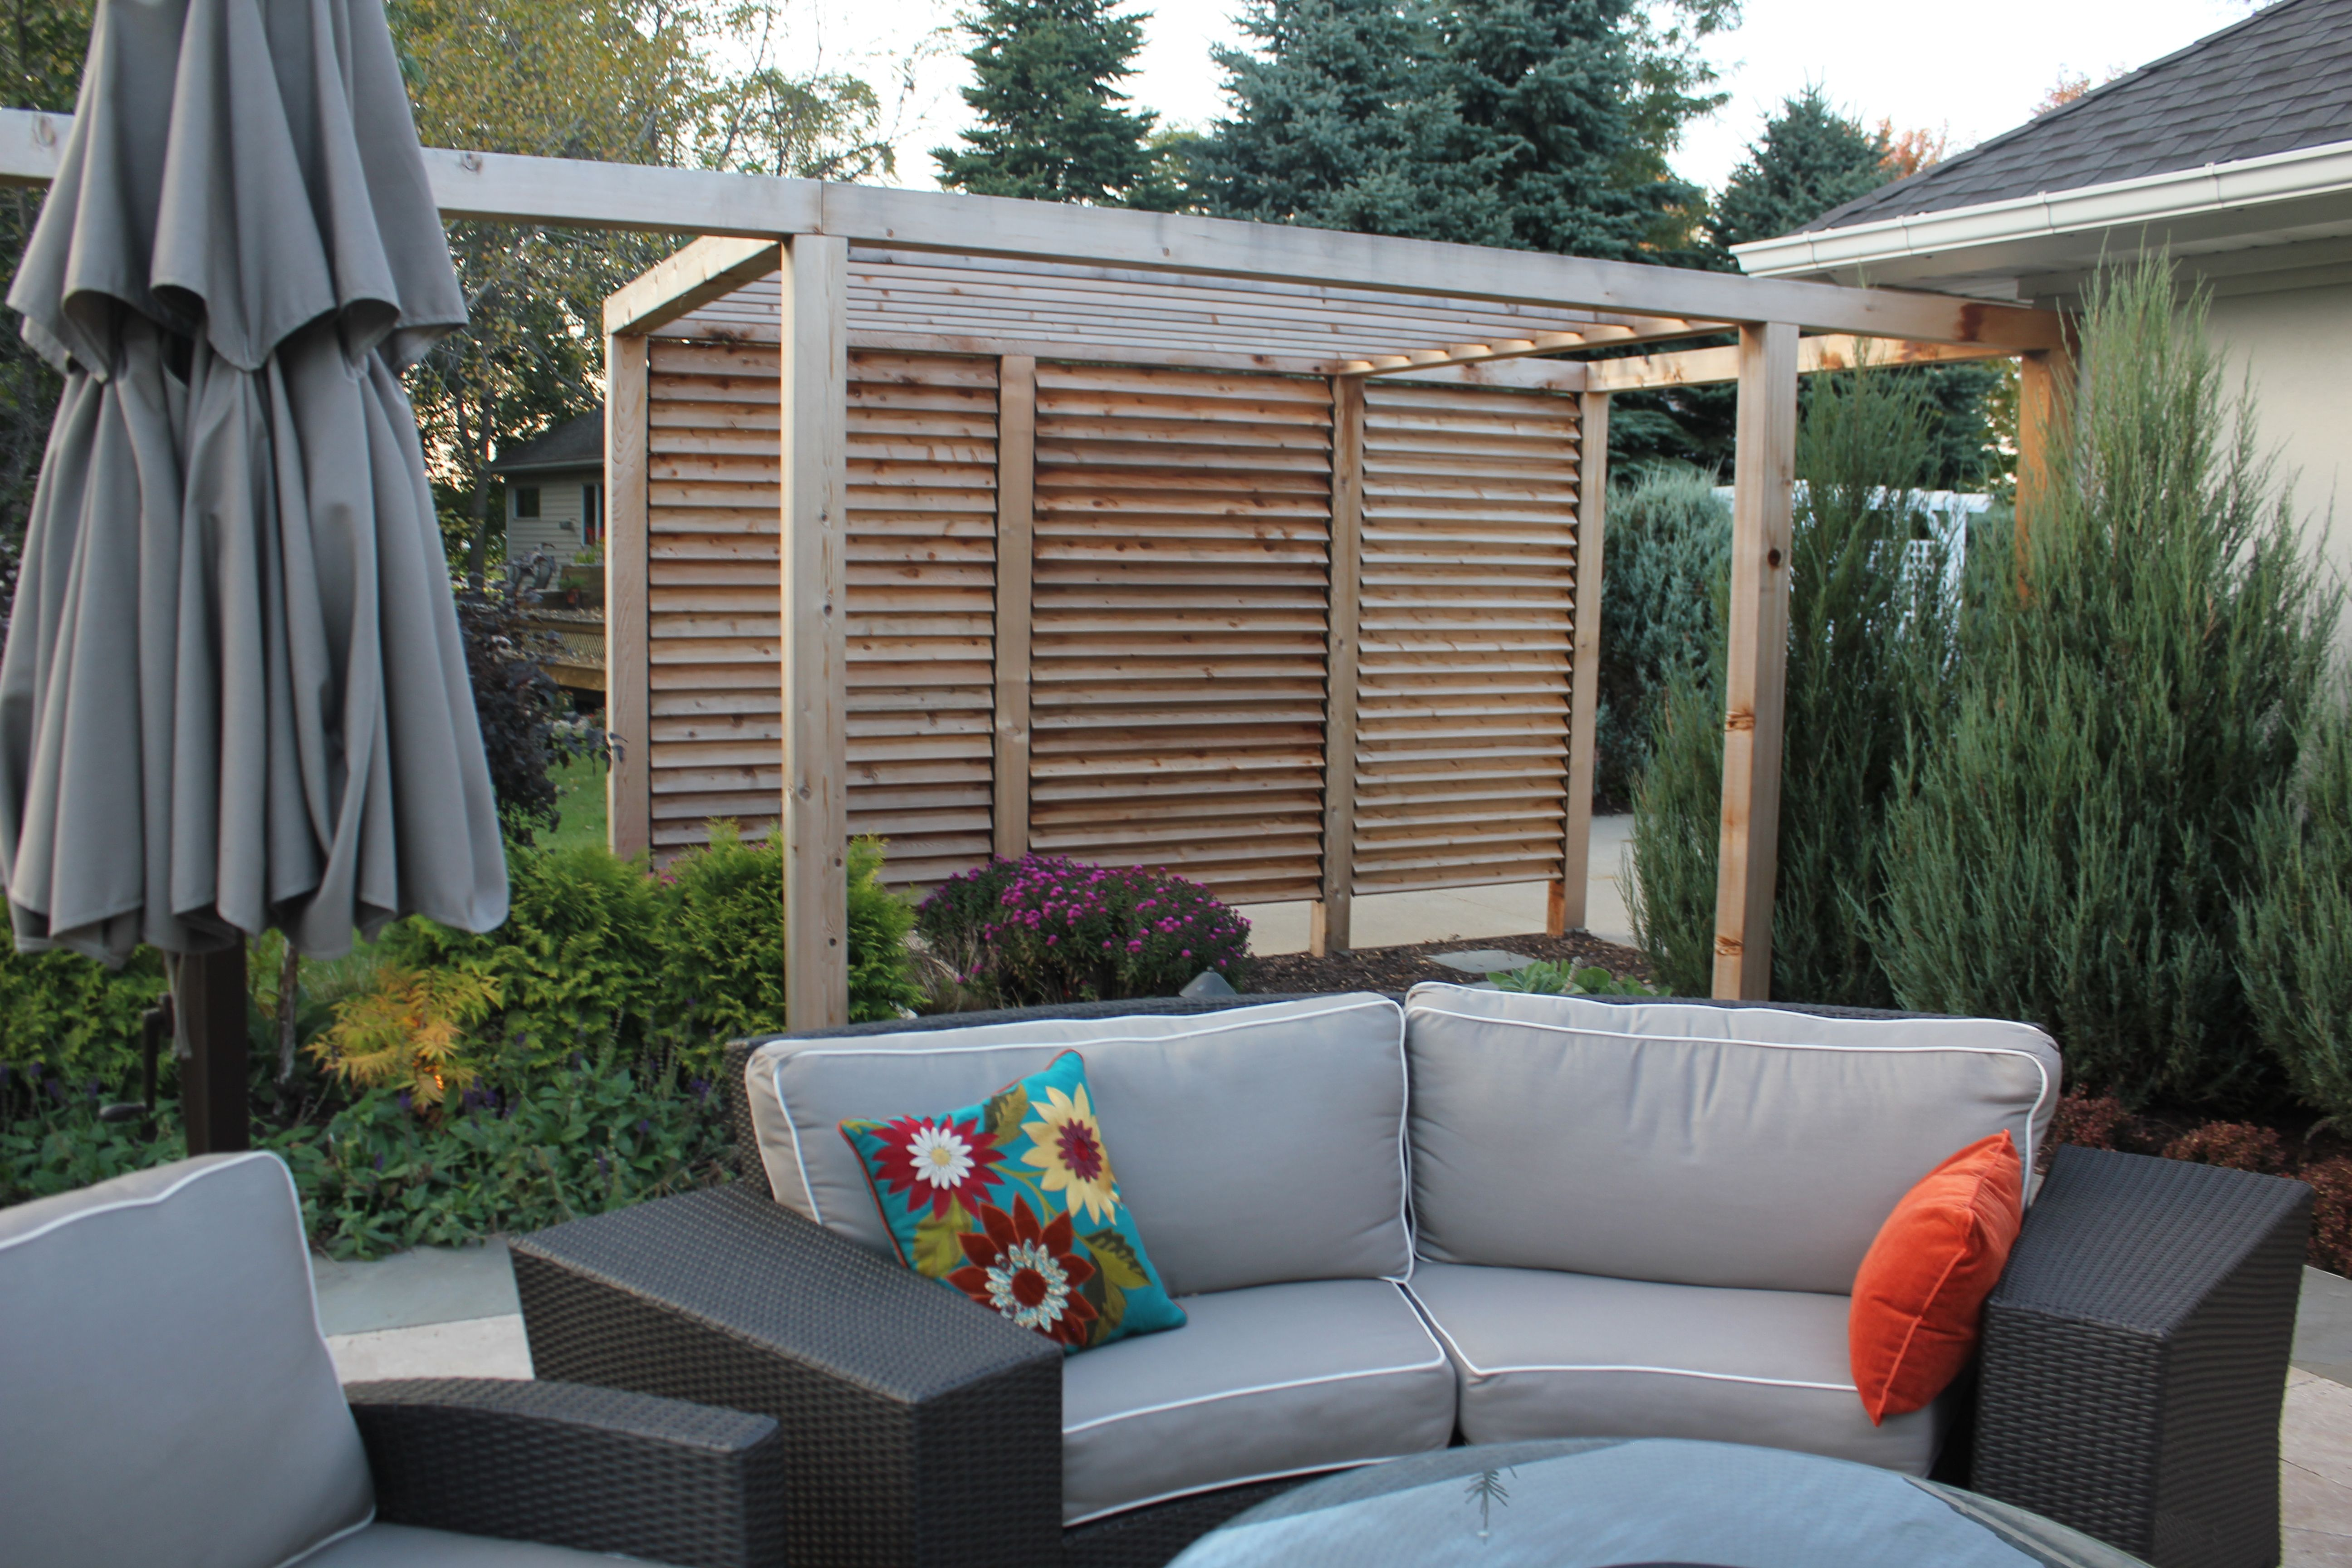 Patio privacy wall ideas - Louvered Garden Privacy Wall